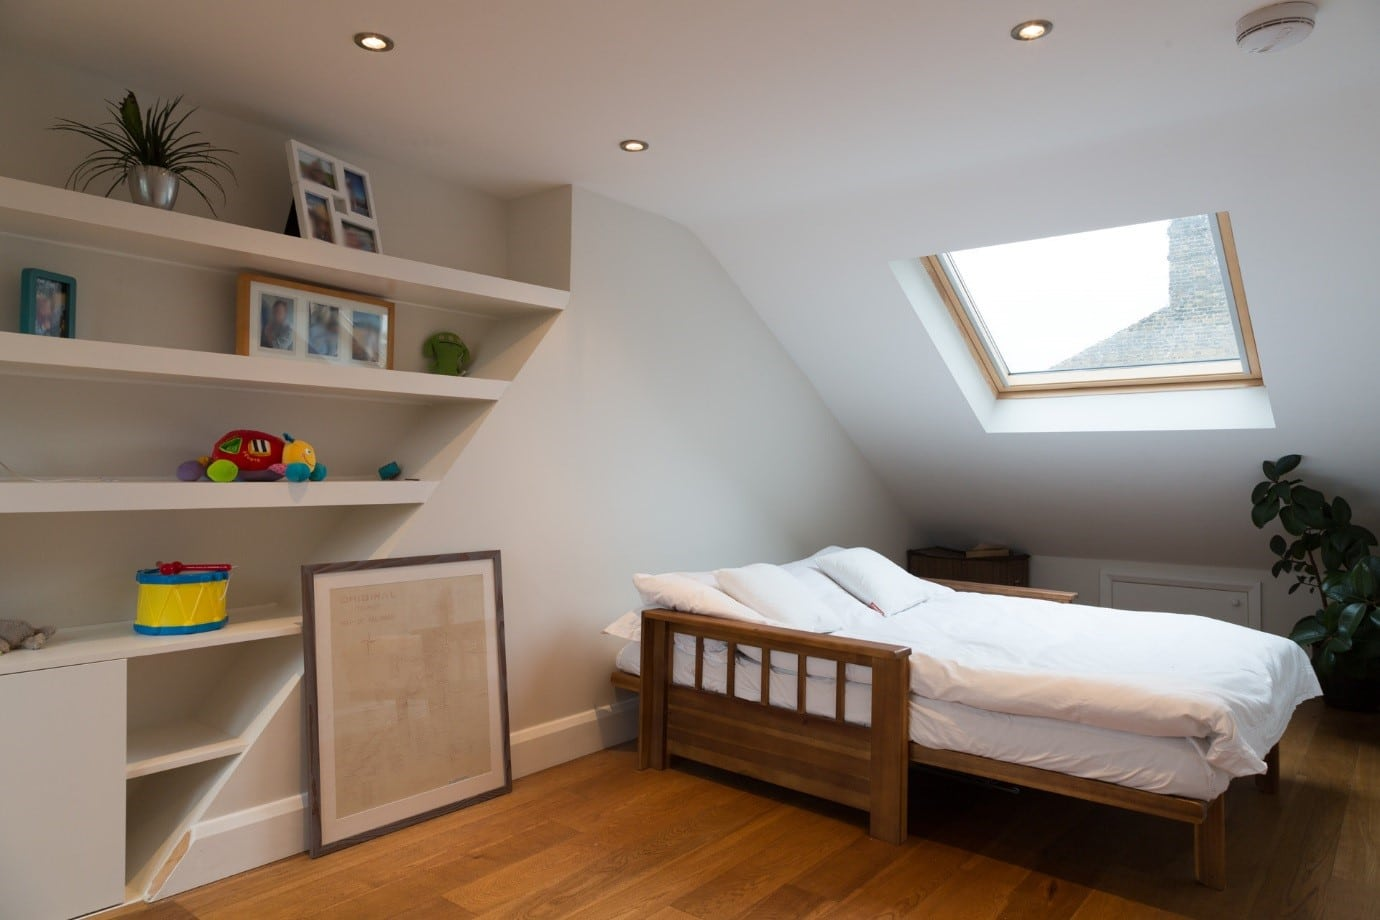 Dormer loft conversion ideas loft conversion information for Bedroom ideas 2016 uk